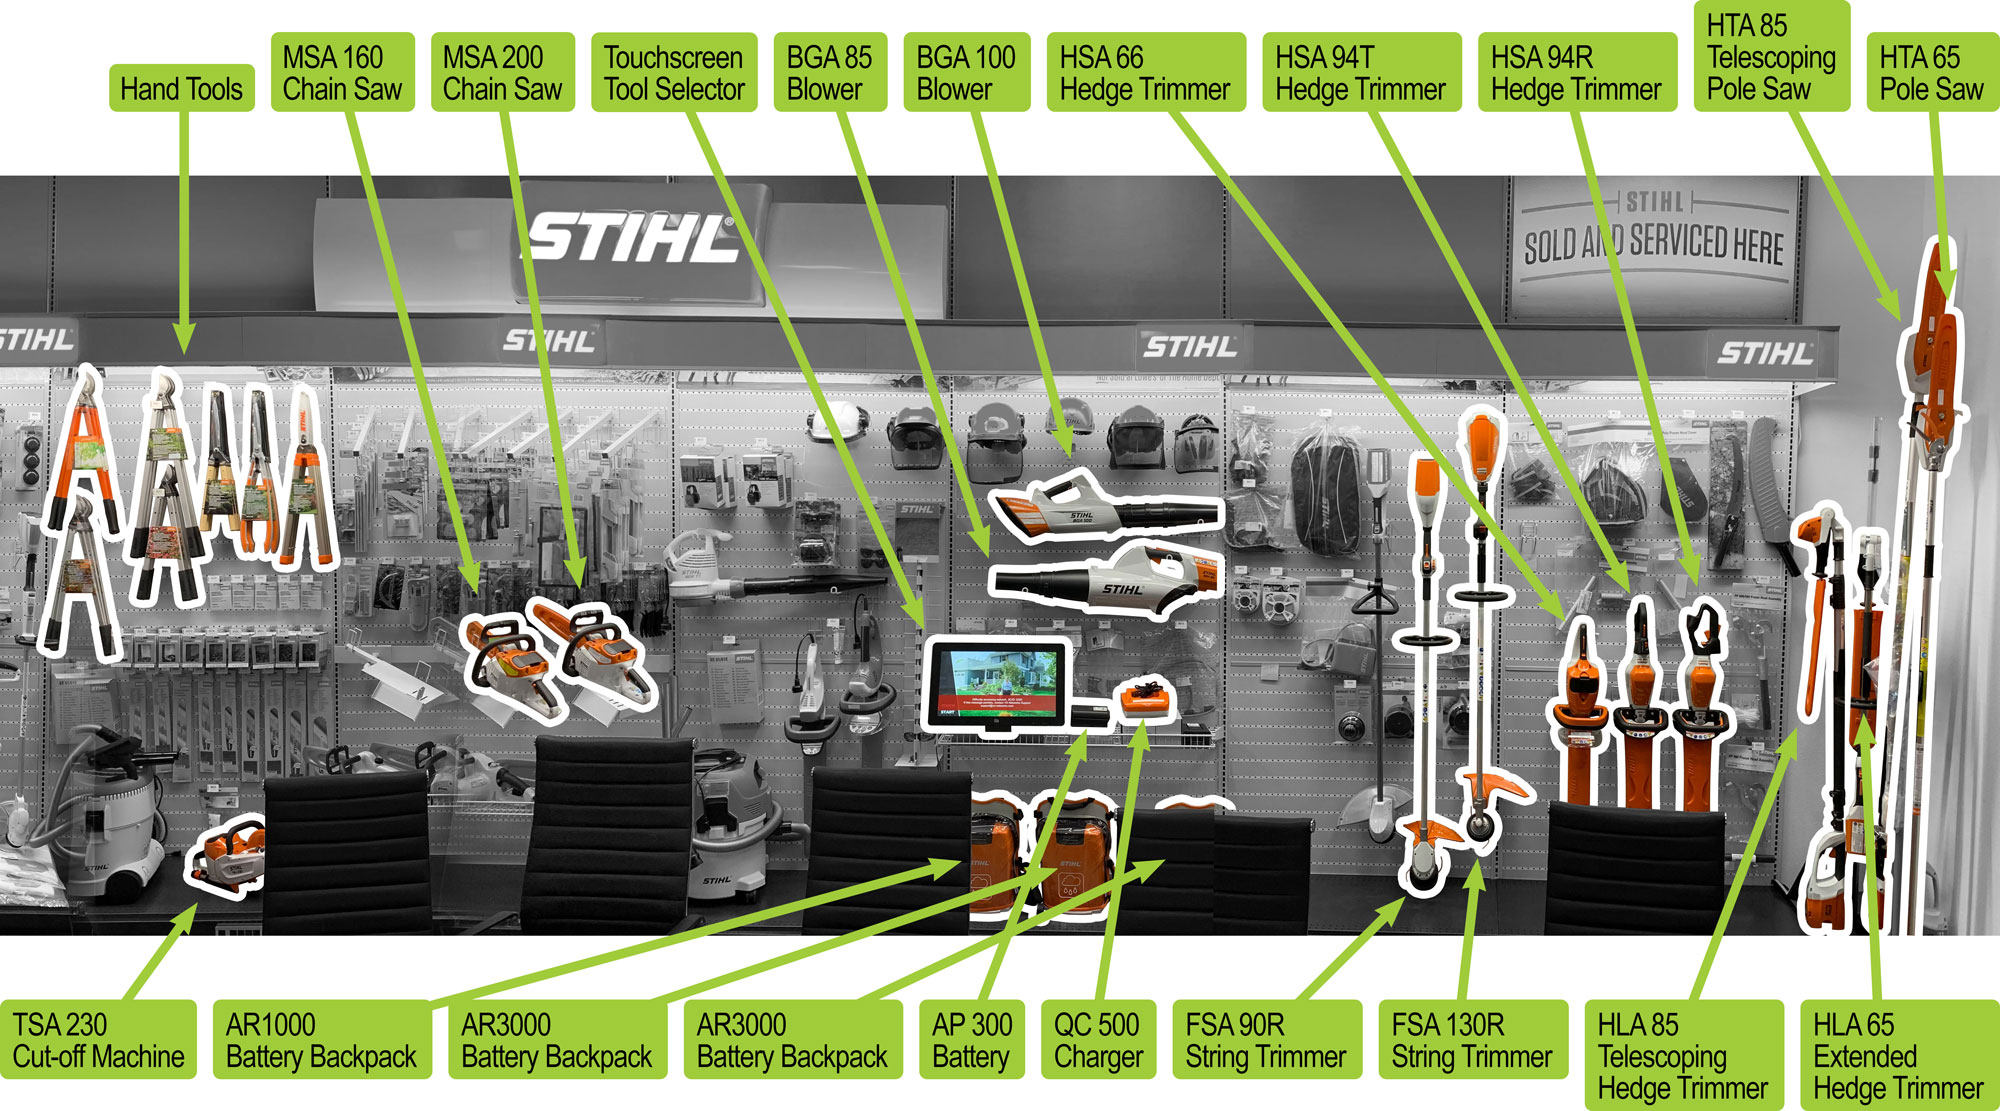 AGZA_STIHL_Training_BER_Wall_PANO_02c_LABELS_2000.jpg